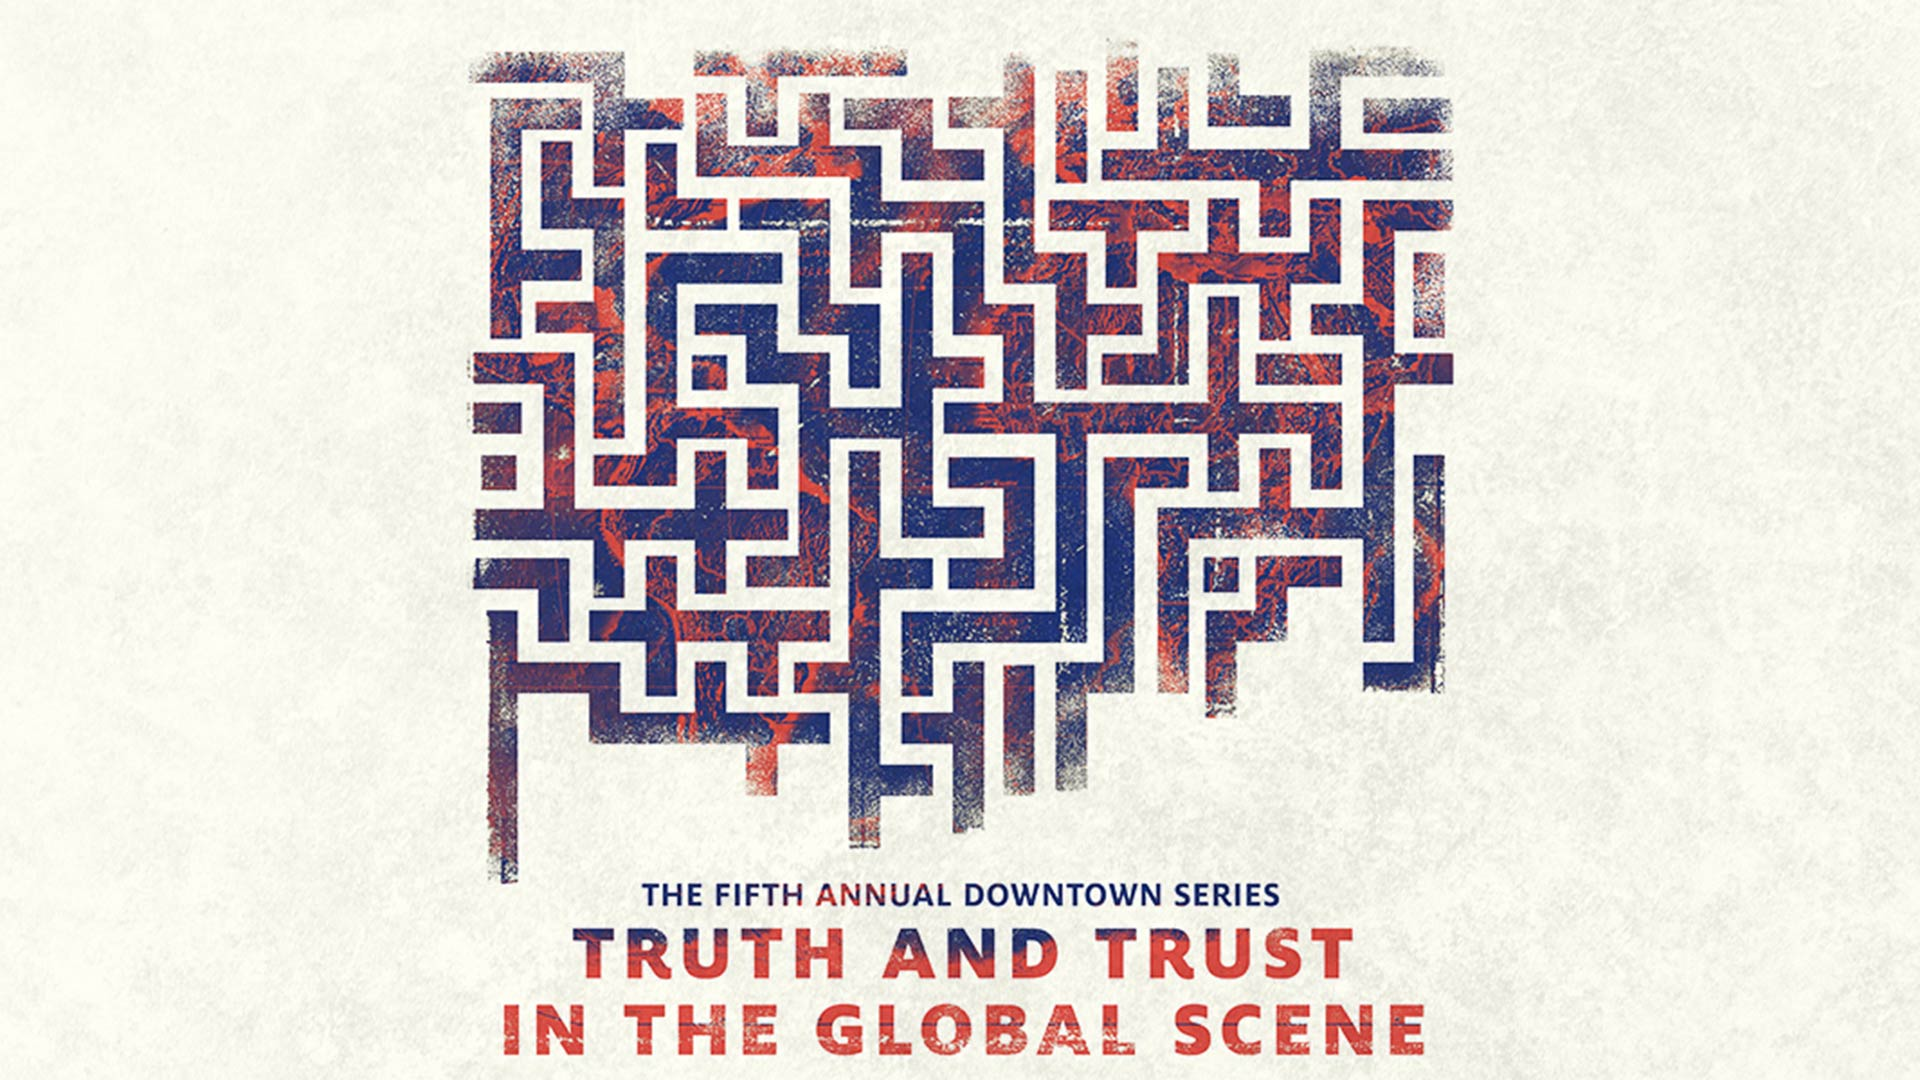 5th Annual Downtown Lecture Series presented by the UA College of Social & Behavioral Science